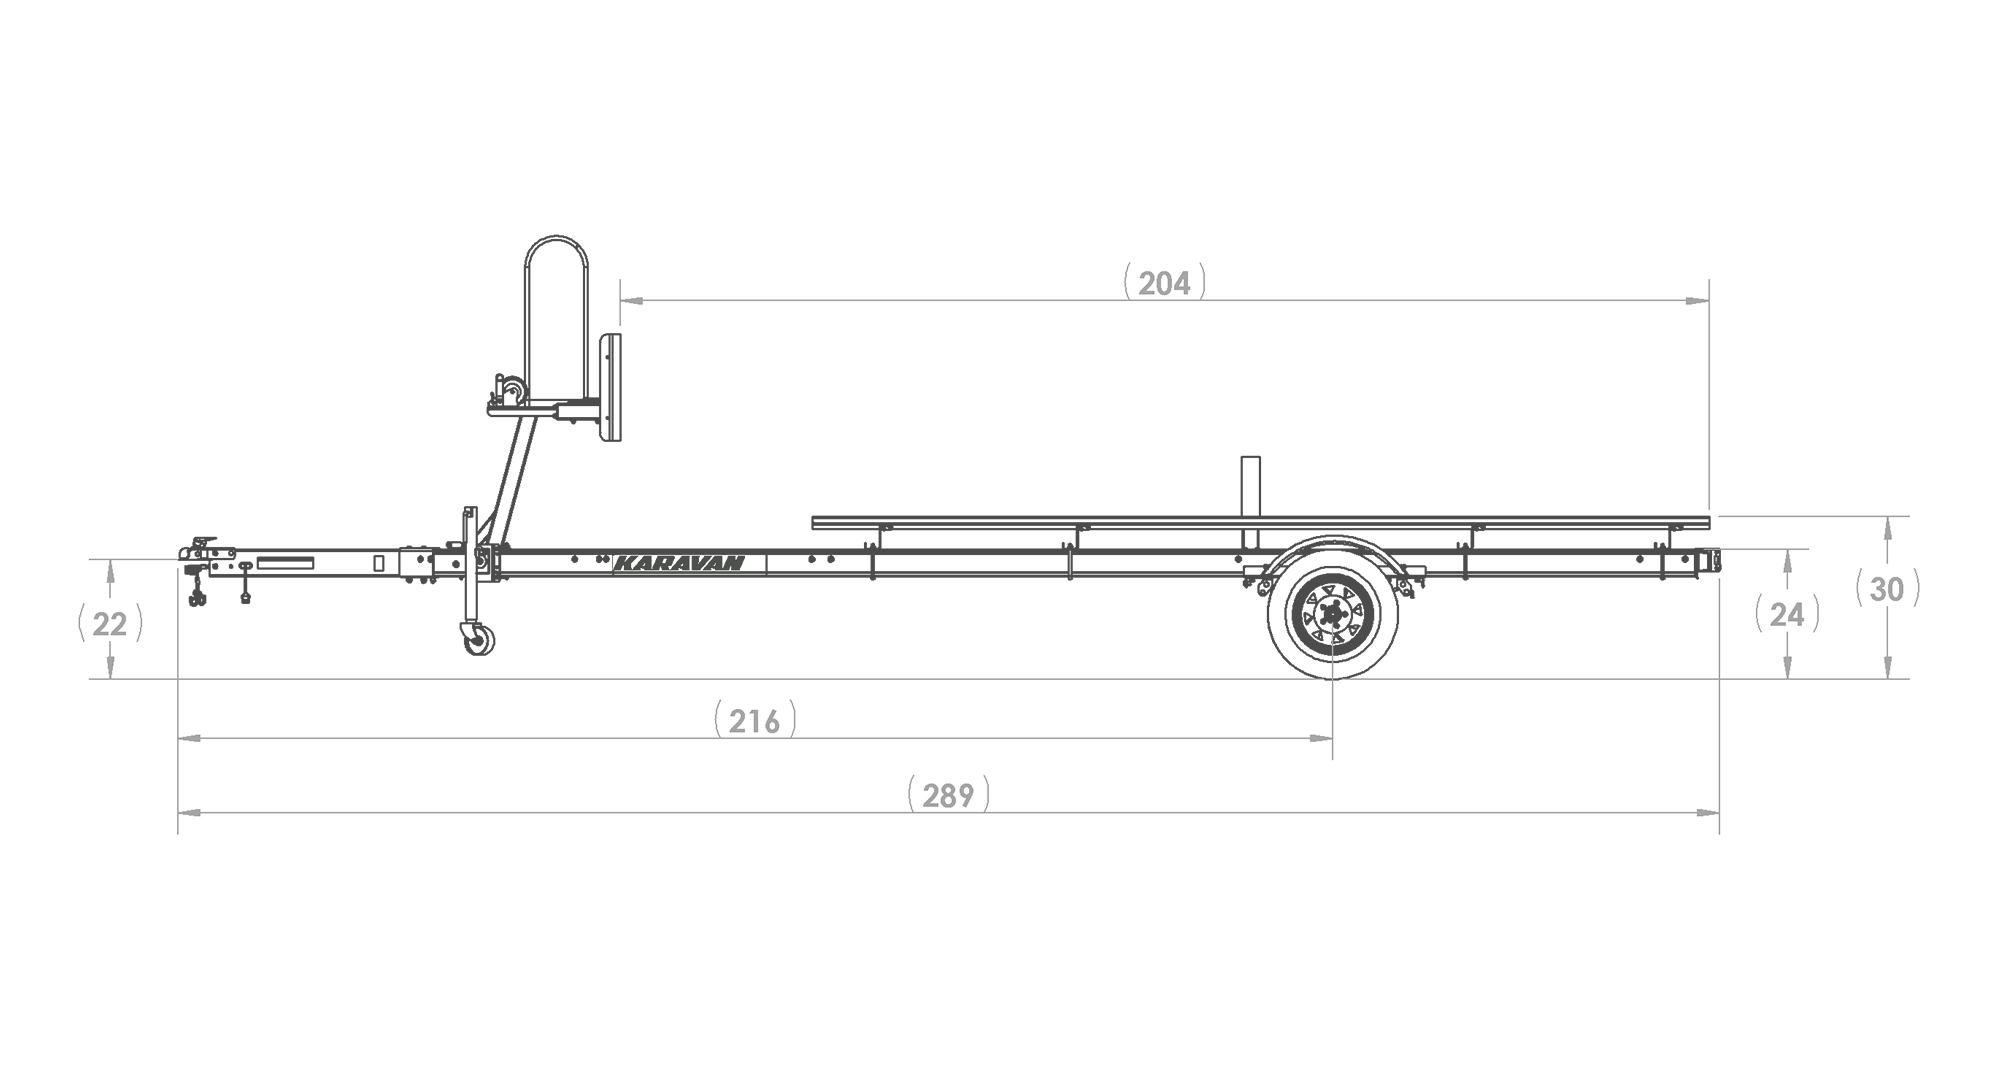 Karavan Trailer's Single Axel Aluminum Pontoon Trailer, model number KDPA-1618, Side View Measurement